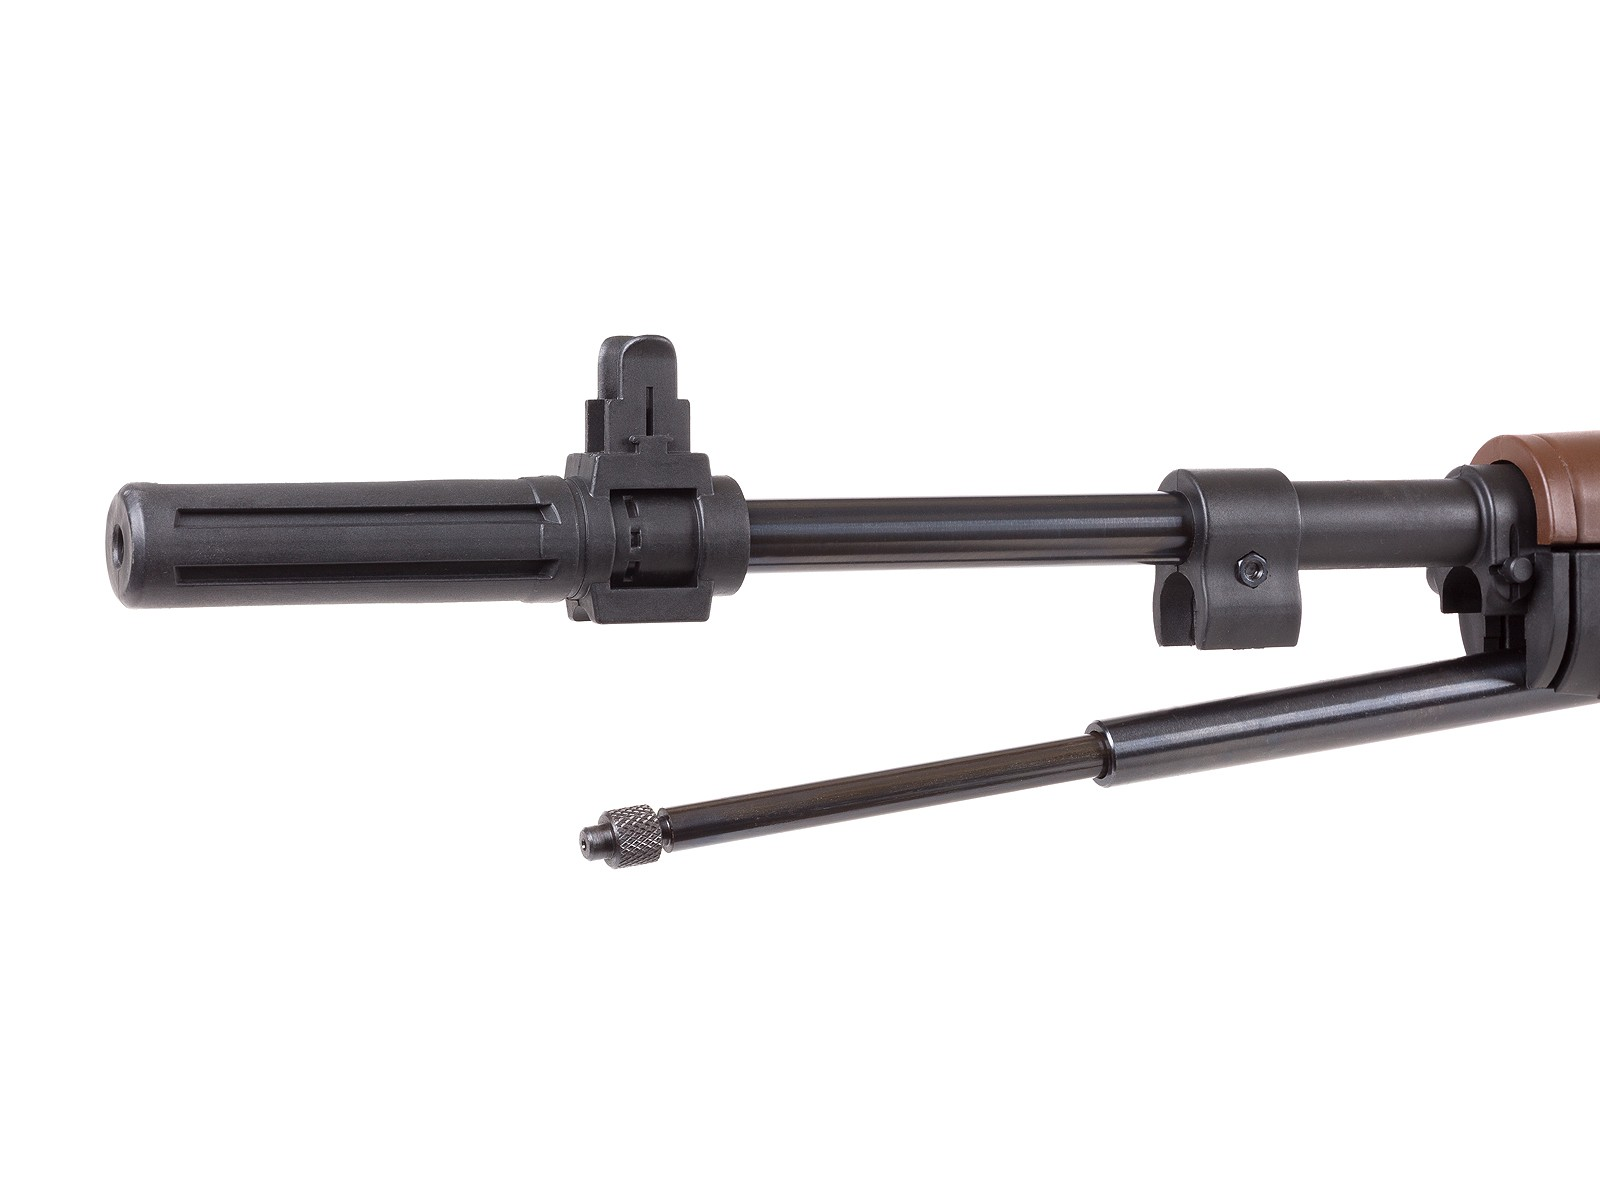 SPRINGFIELD ARMORY Underlever Air Rifle M1A